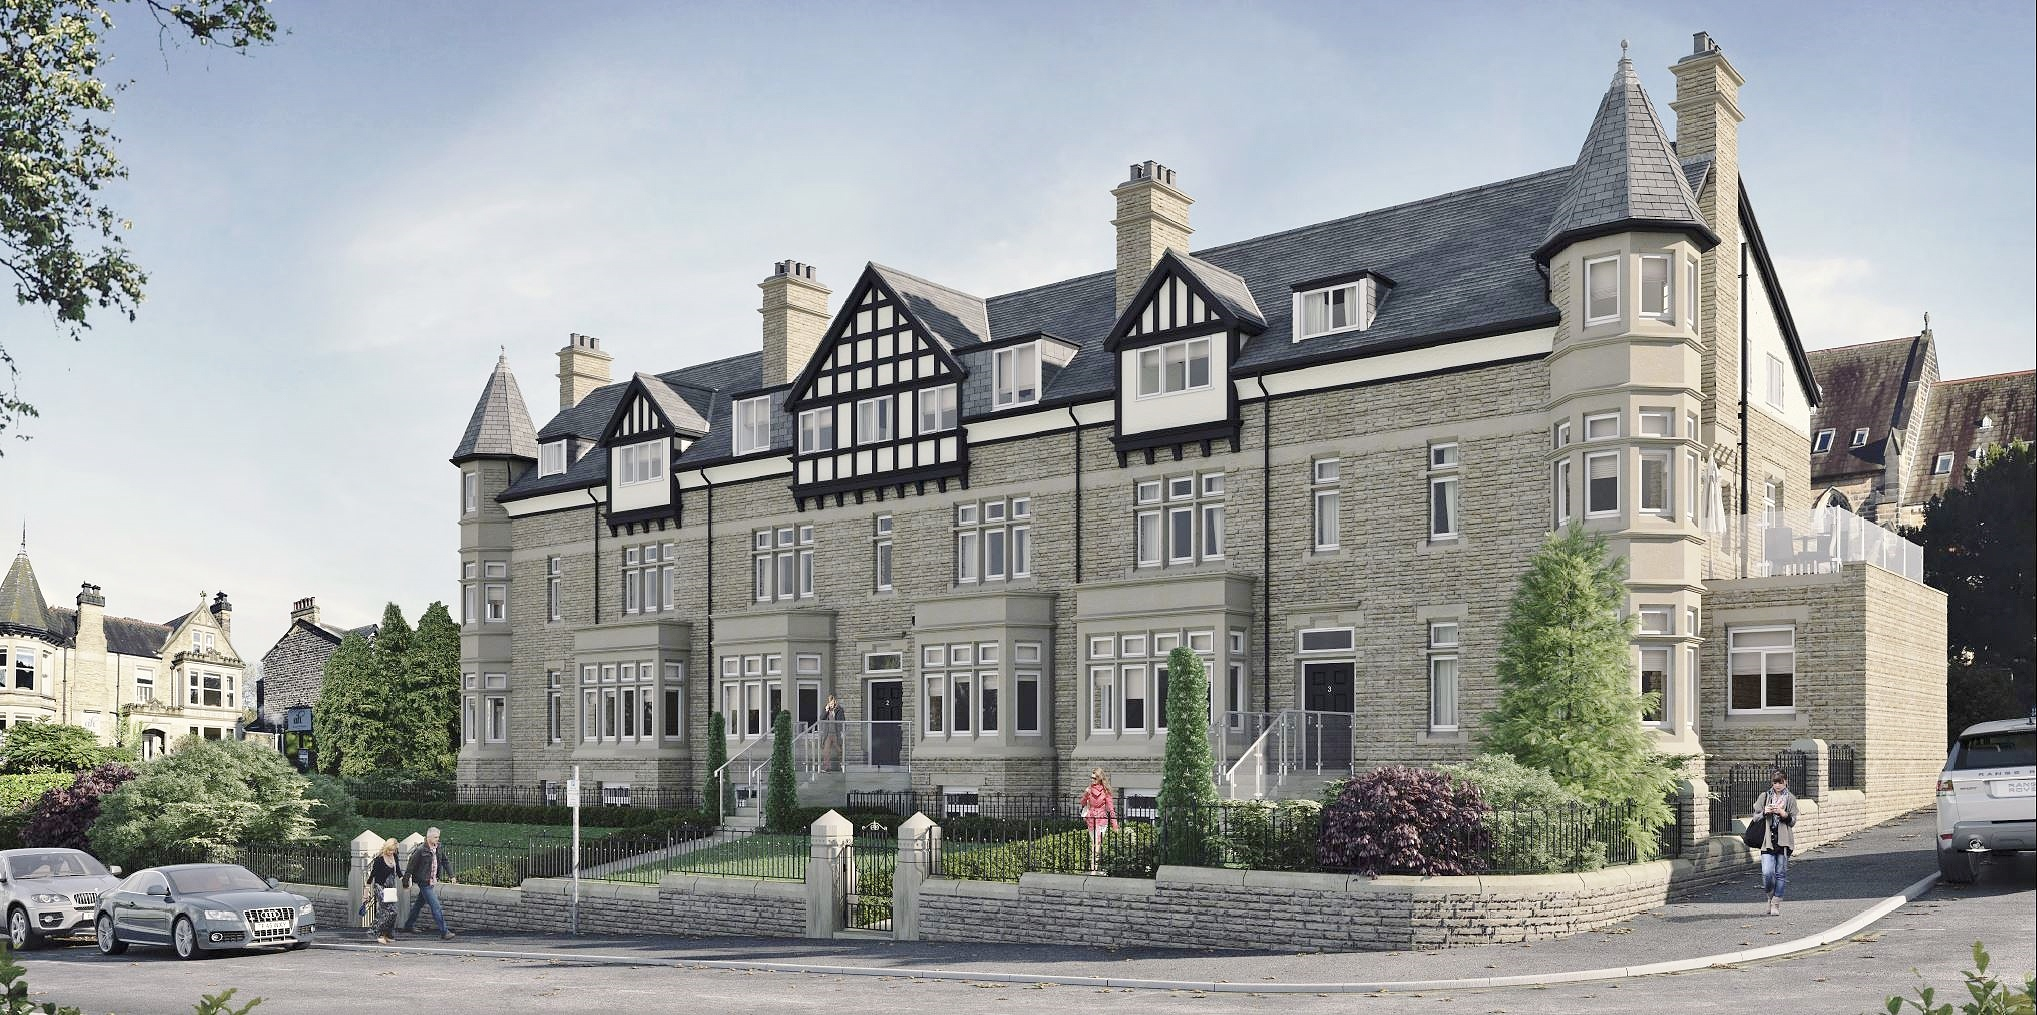 CapitalStackers helps fund conversion of Harrogate hotel